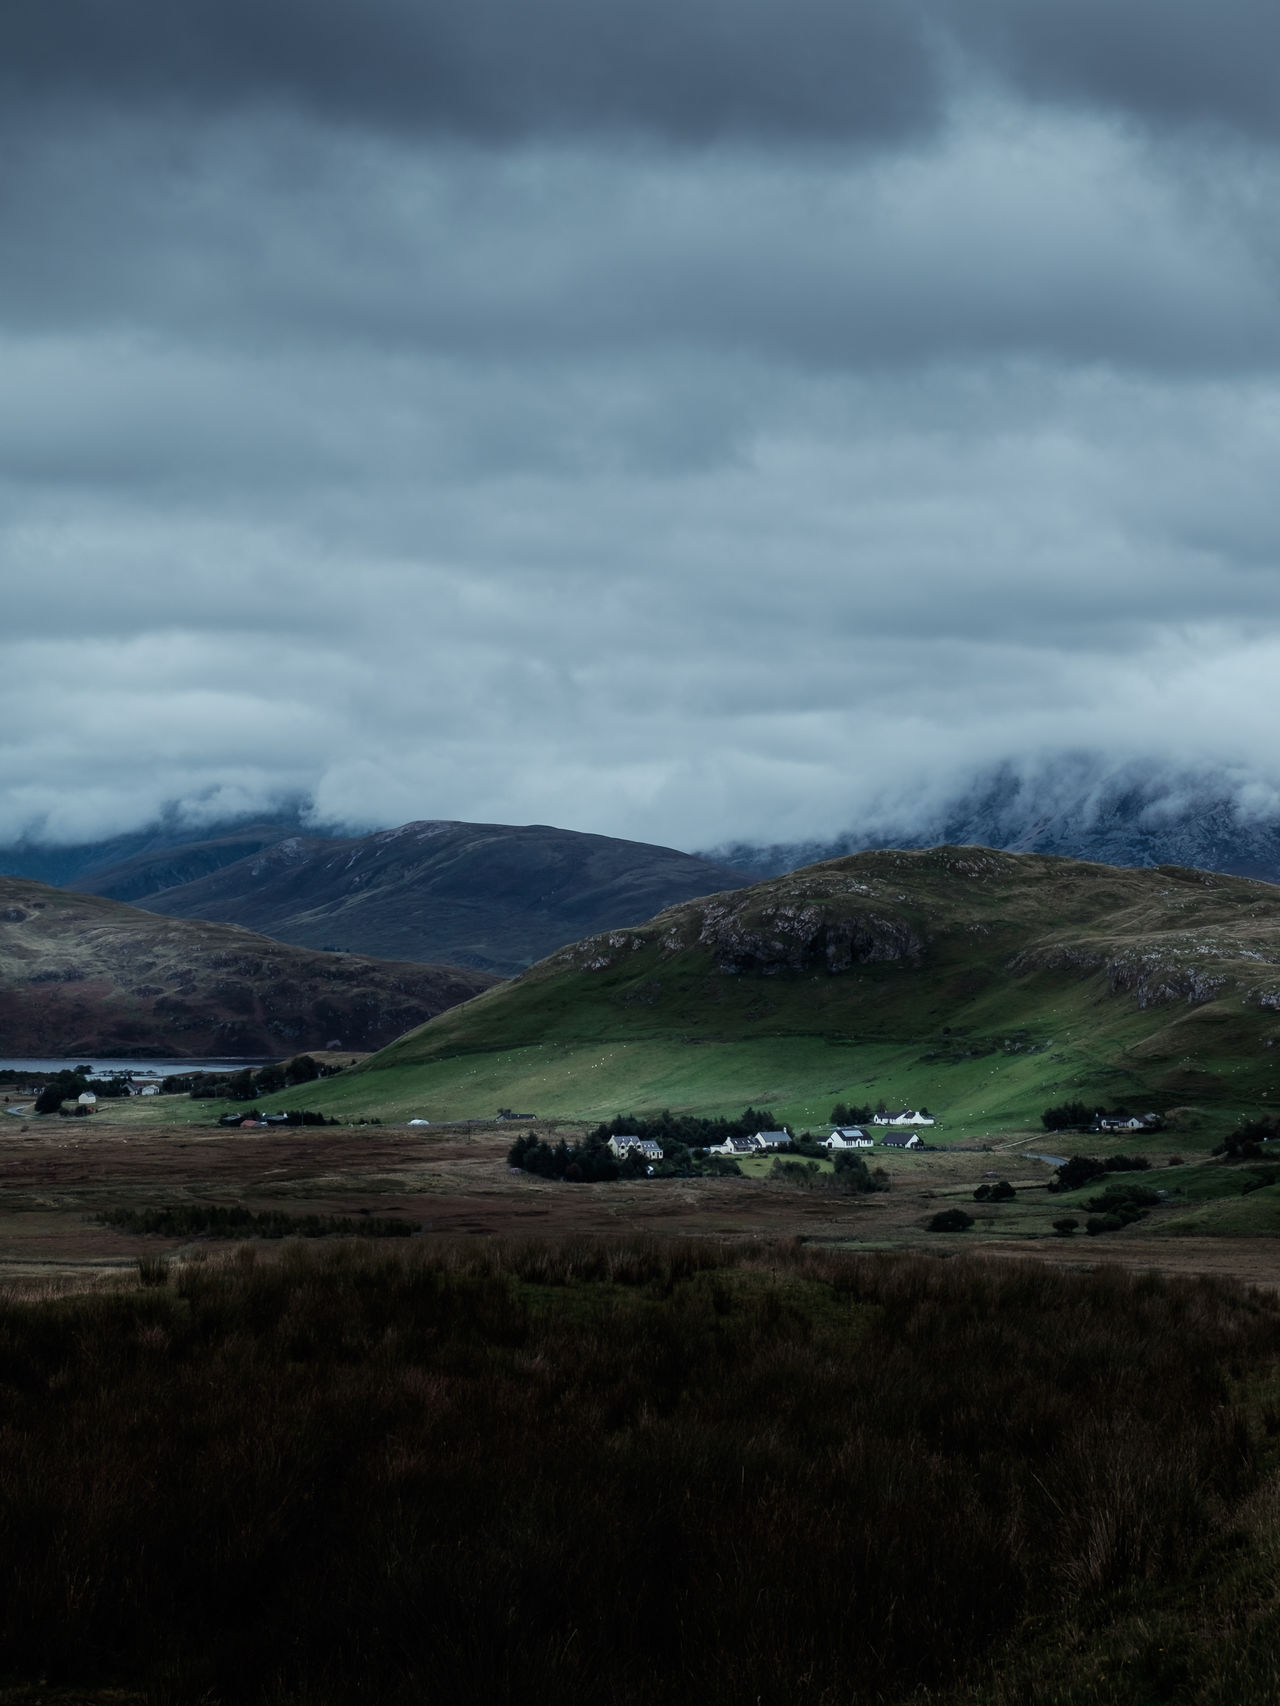 Thank you so much for your support during this year! I was on several trips but scotland was definitely my favorite. So let's look back to a typical cloudy day in the Scottish Highlands. Location: Highlands, Scotland Equipment: Fujifilm X-T1 + XF18-55 Agriculture Bad Weather Beauty In Nature Cloud - Sky Clouds Dramatic Sky Green Hill Home Houses Landscape Lush Foliage Mood Moody Mountain Nature Outdoors Rural Scene Schottland Scotland Small Town Storm Thunderstorm Tranquility Tree